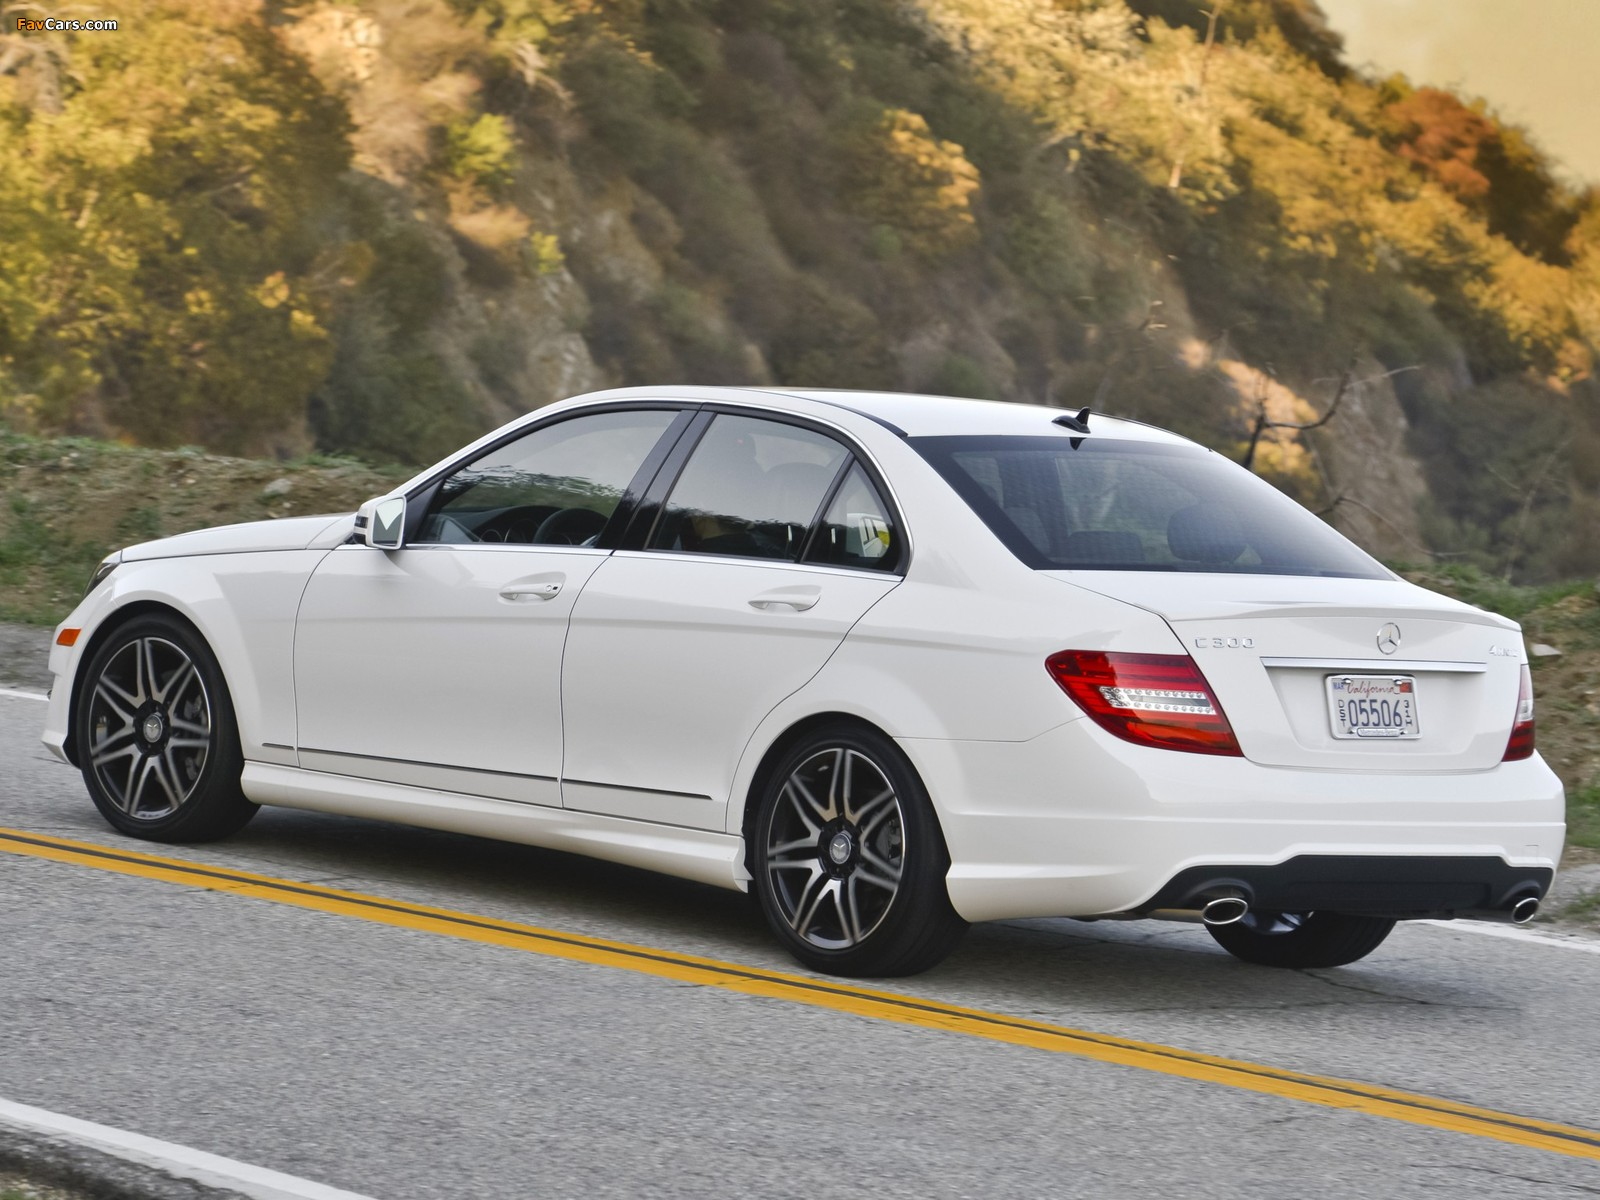 Mercedes-Benz C 300 4MATIC AMG Sports Package US-spec (W204) 2011 images (1600 x 1200)